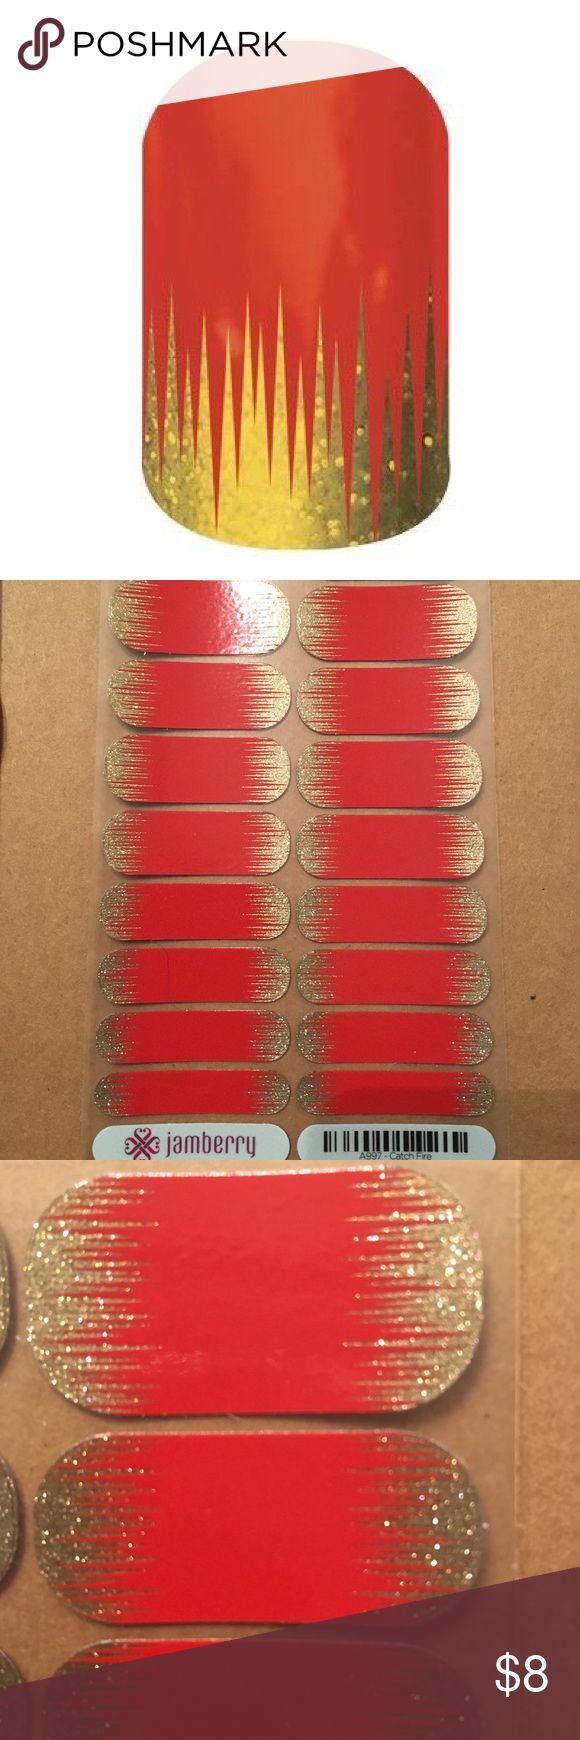 Catch Fire Jamberry Nail Wraps Full Sheet of Catch Fire Jamberry Nail Wraps. Jamberry Makeup